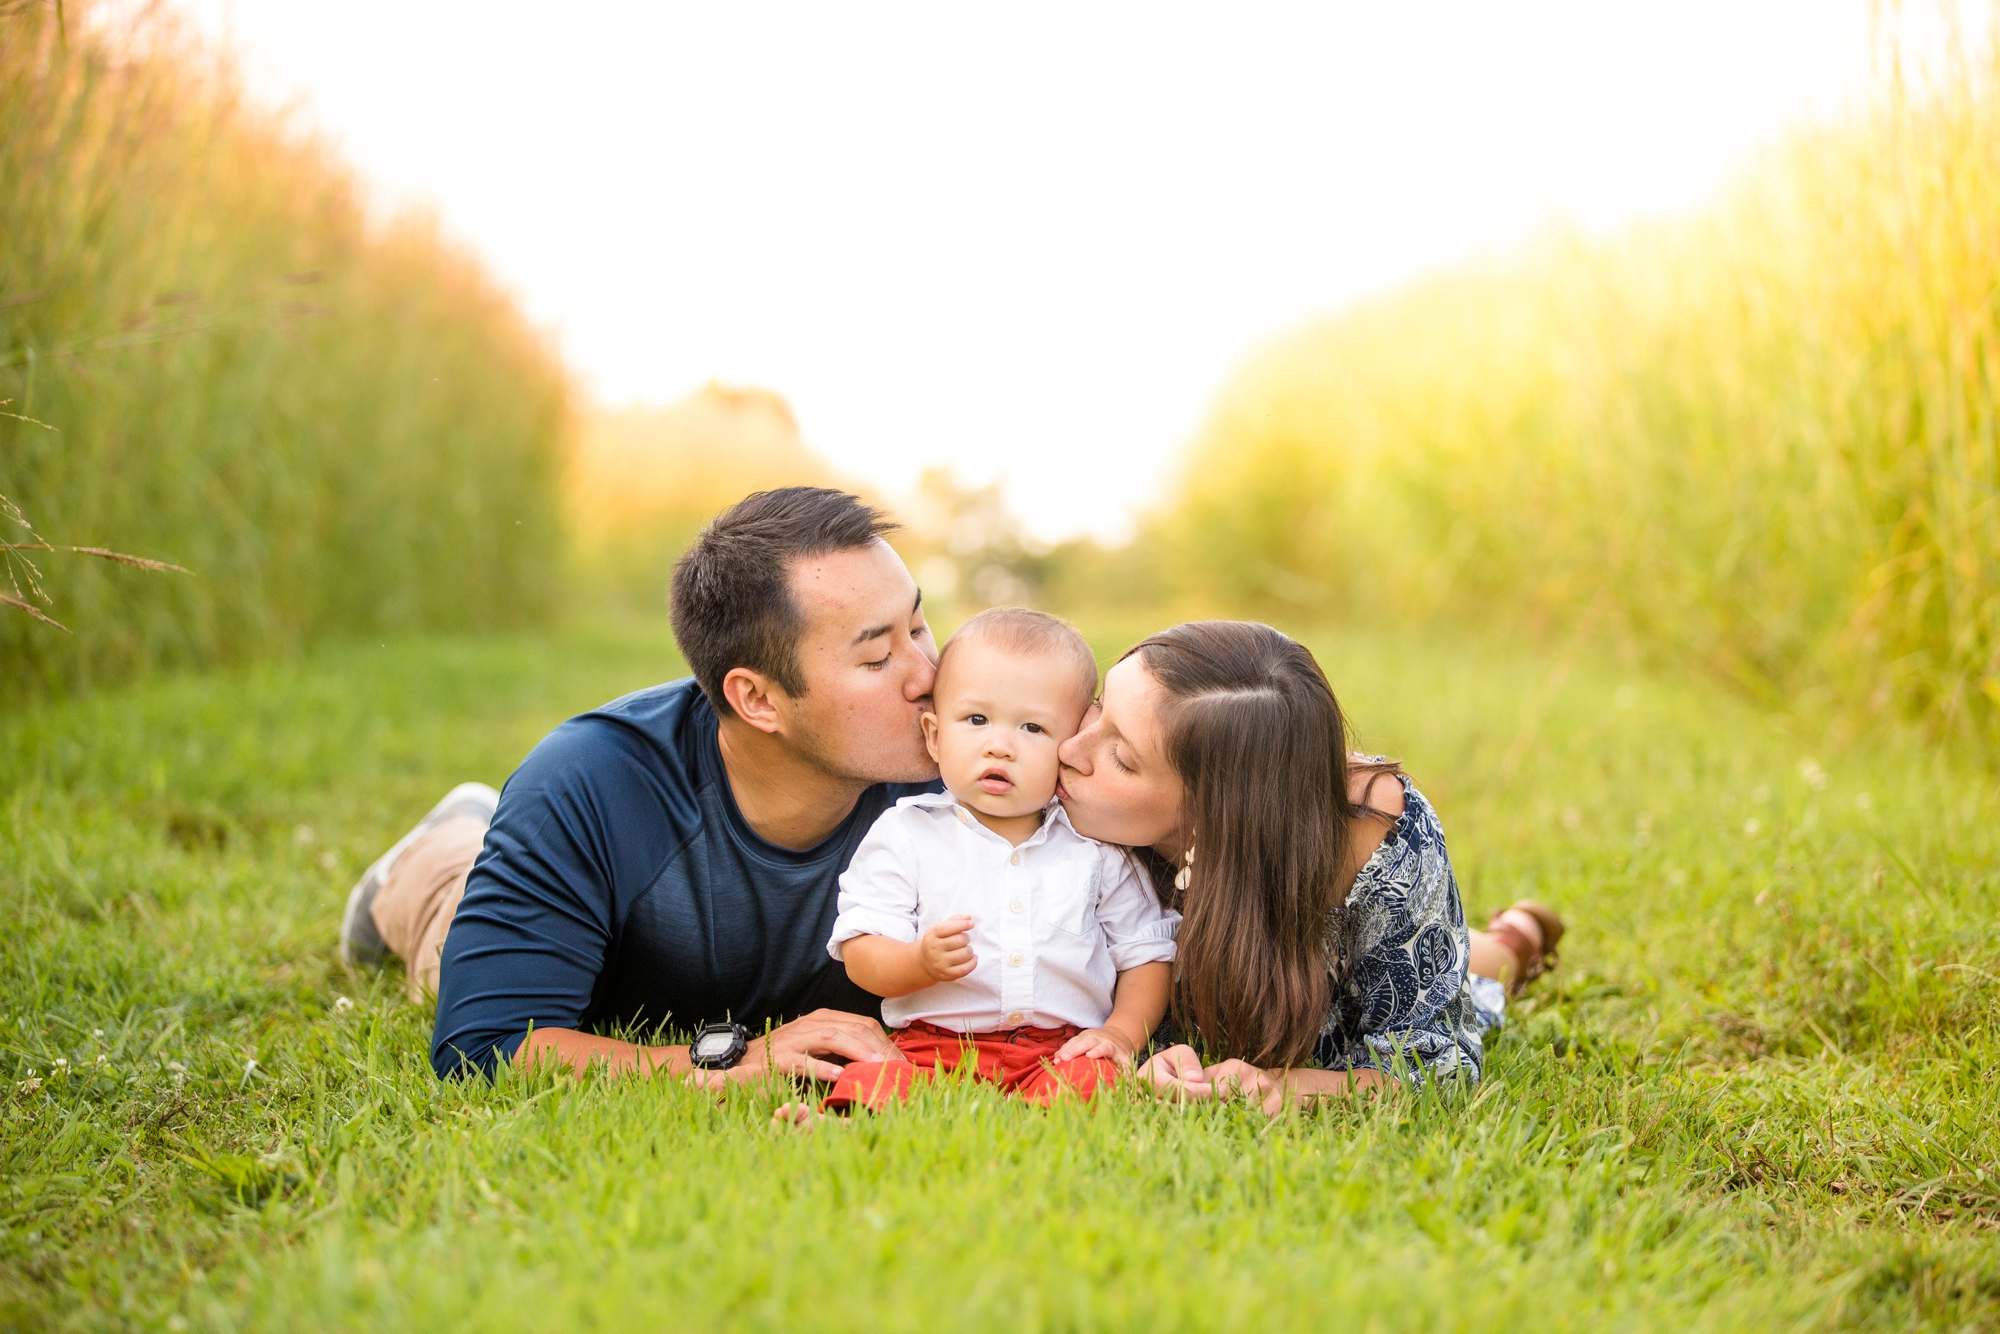 best places to take pictures in pittsburgh, cool places to take pictures in pittsburgh, mcconnells mill state park, pittsburgh family photographer, cranberry township family photographer